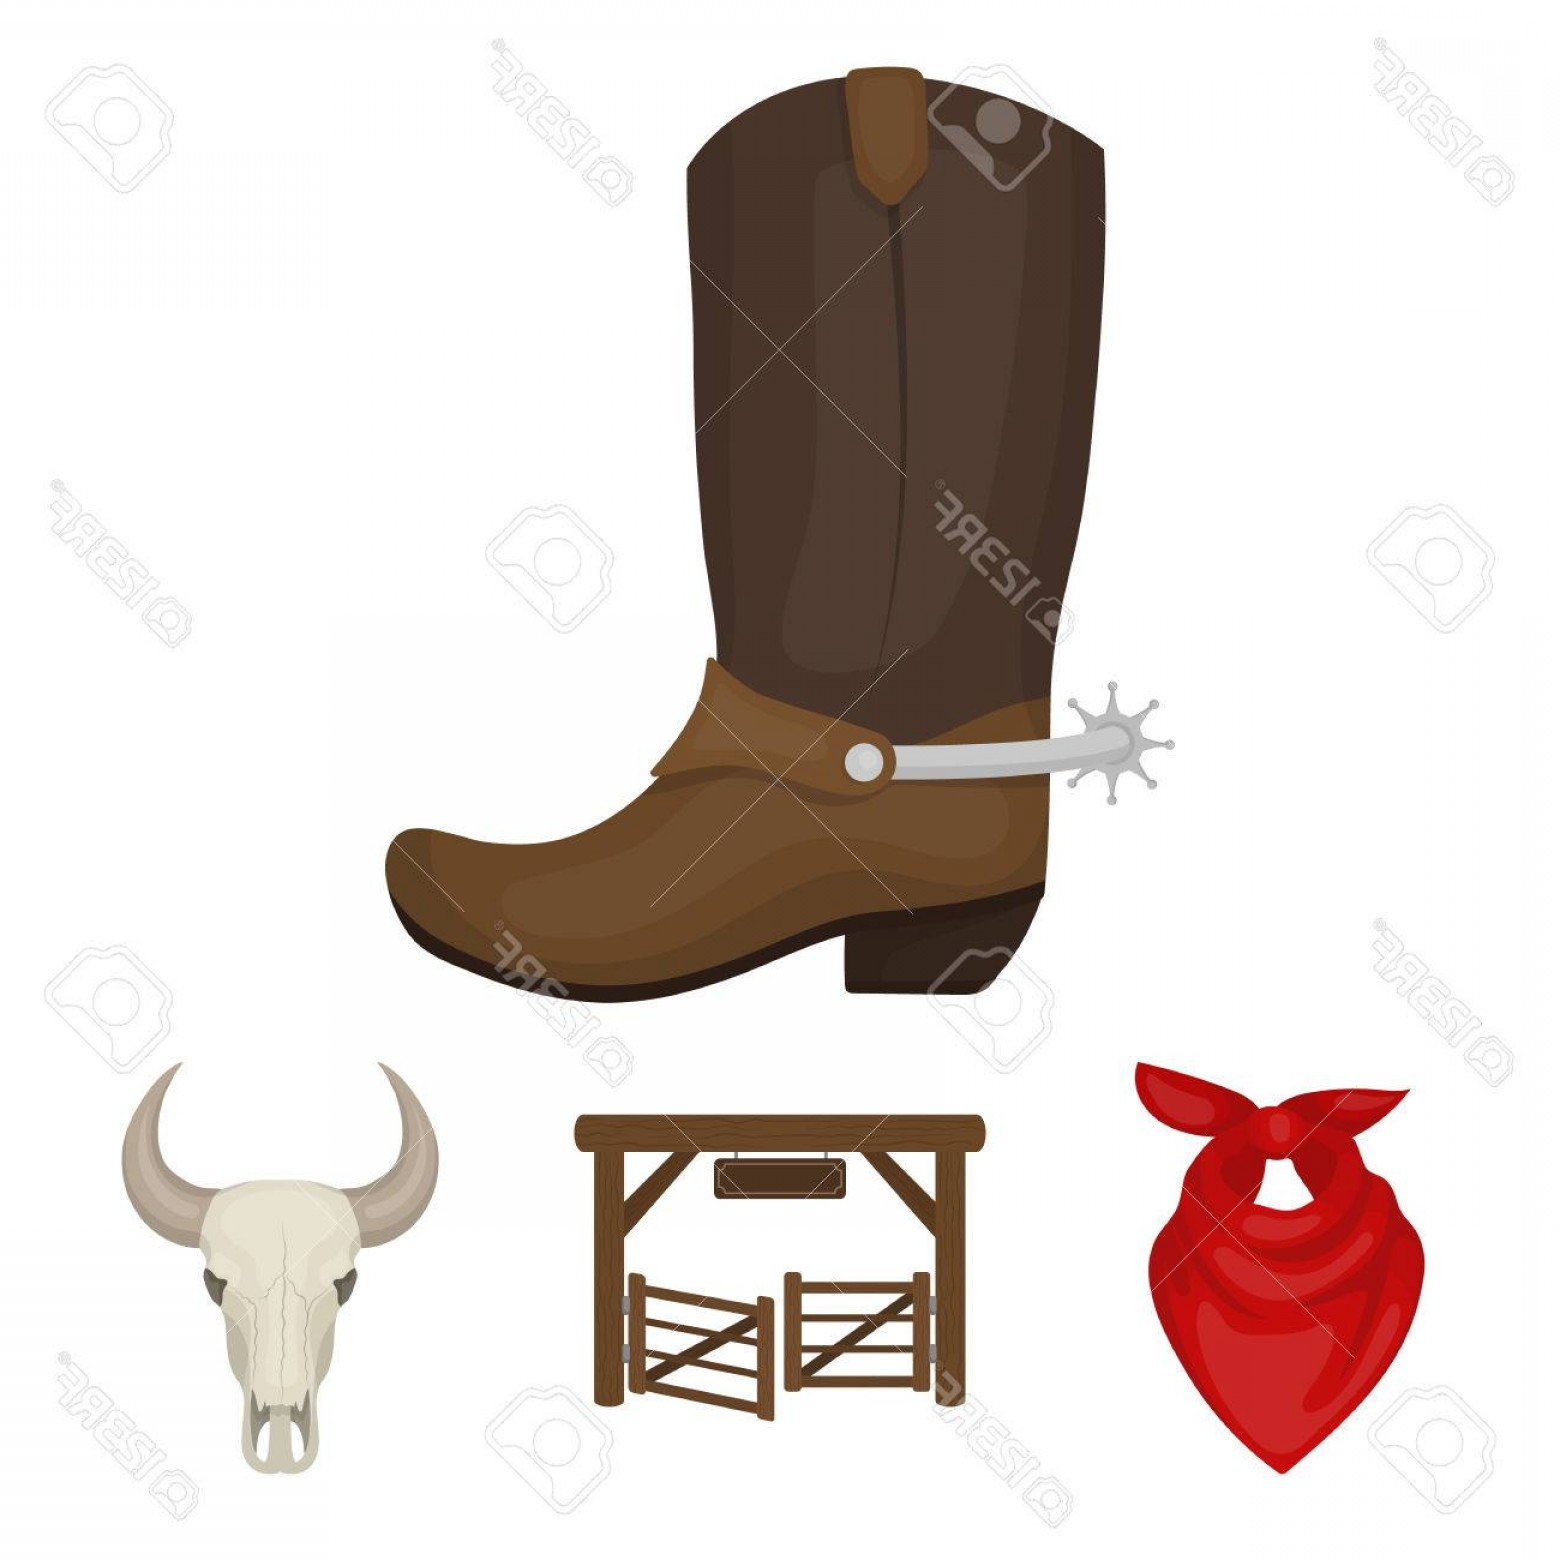 Spurs Clip Art Vector: Photostock Vector Gates A Bull S Skull A Scarf Around His Neck Boots With Spurs Rodeo Set Collection Icons In Cartoon